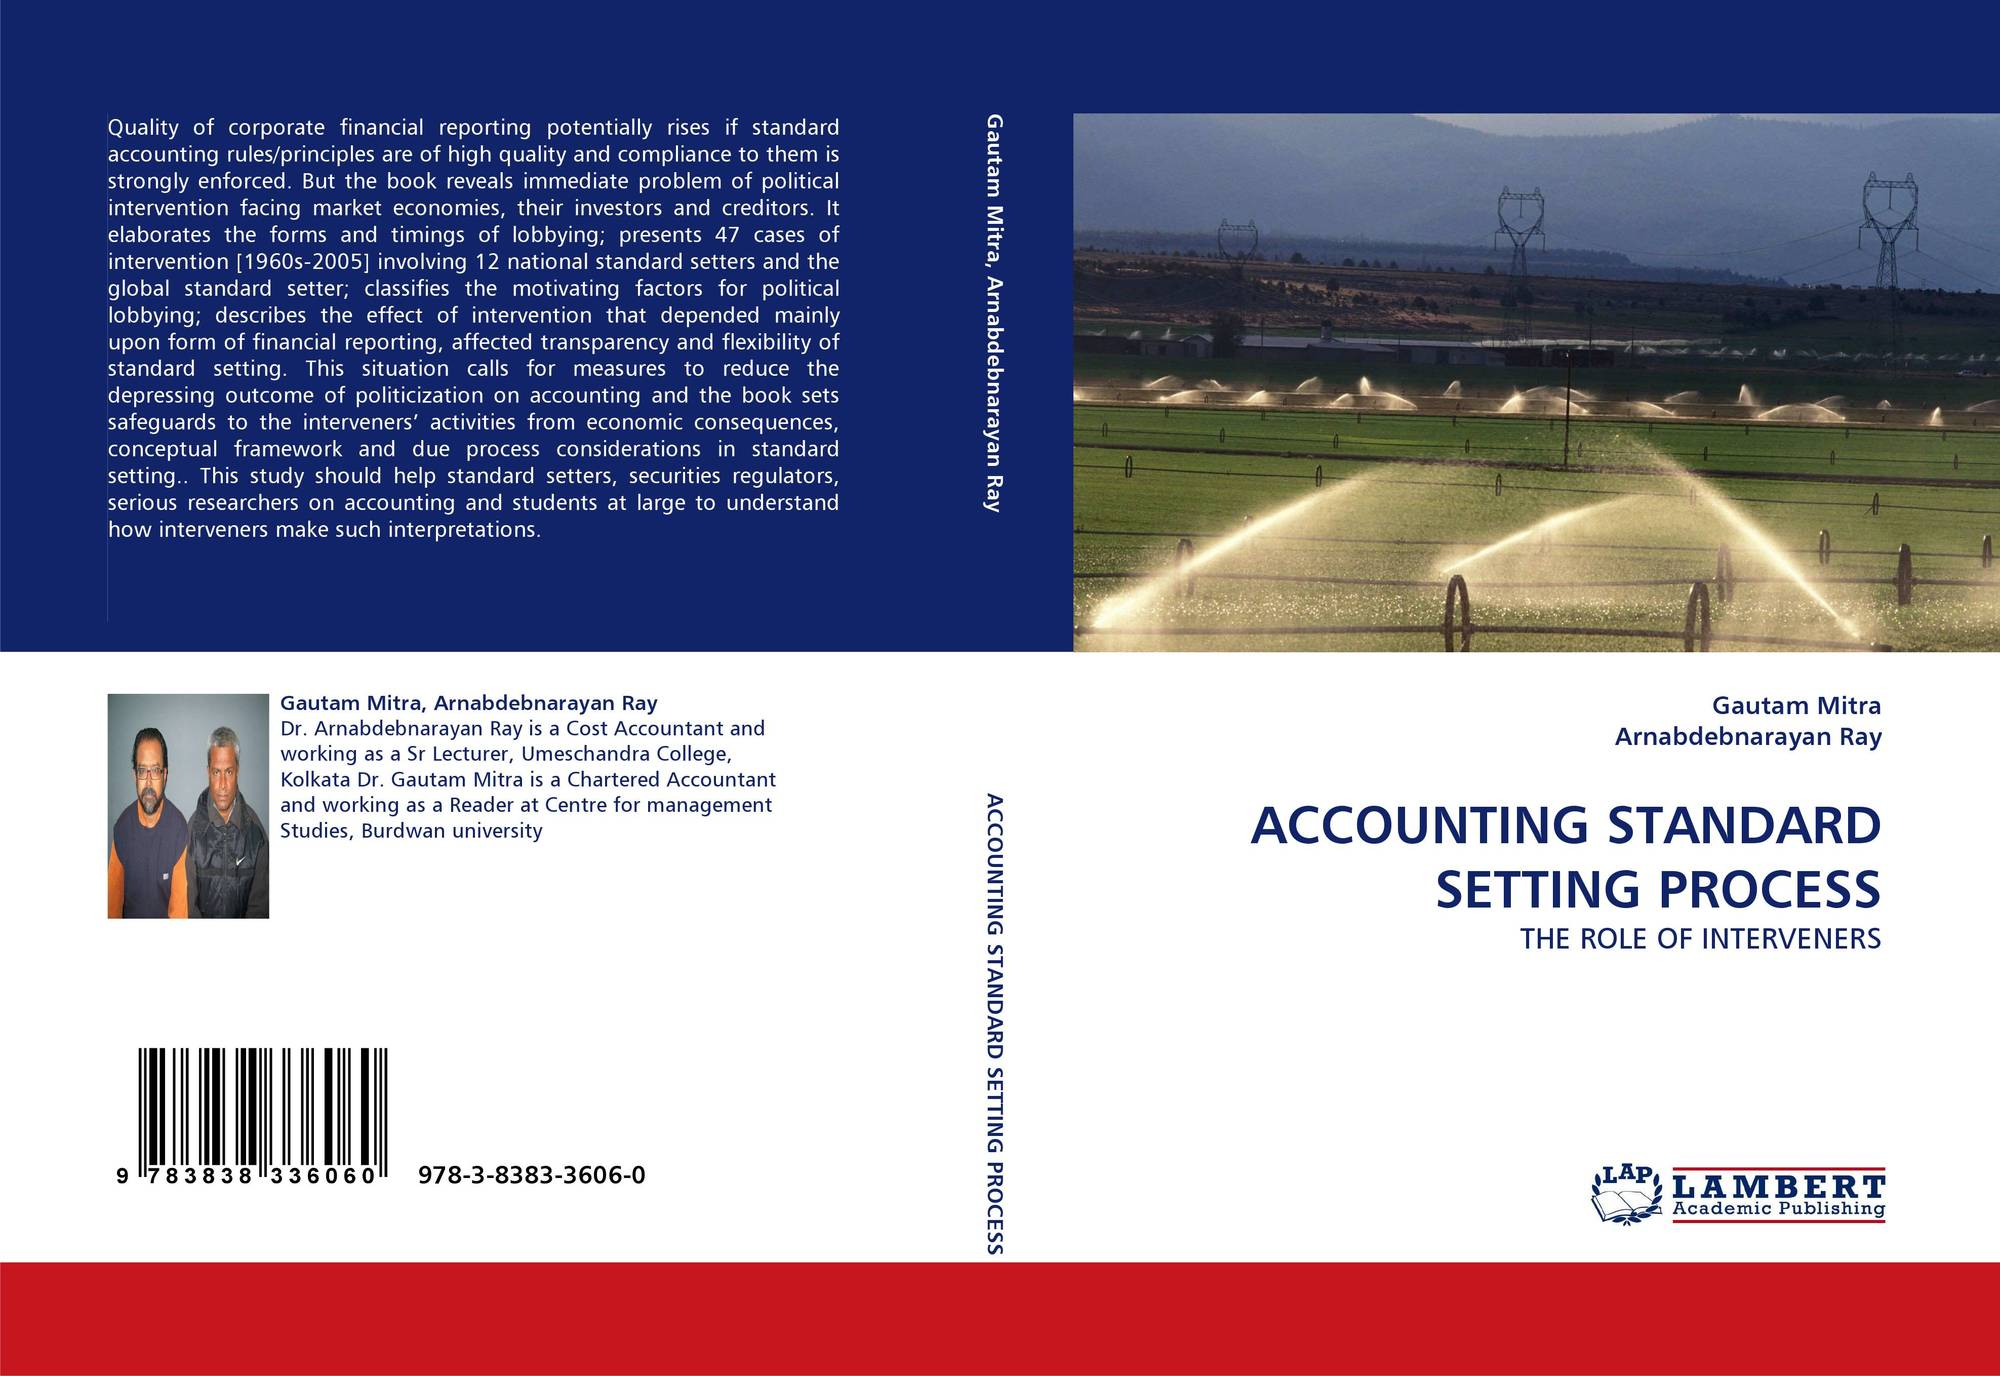 the standard setting process of accounting An examination of the accounting standard-setting process in south africa  reveals deficiencies which impede the process from producing products that  advance.